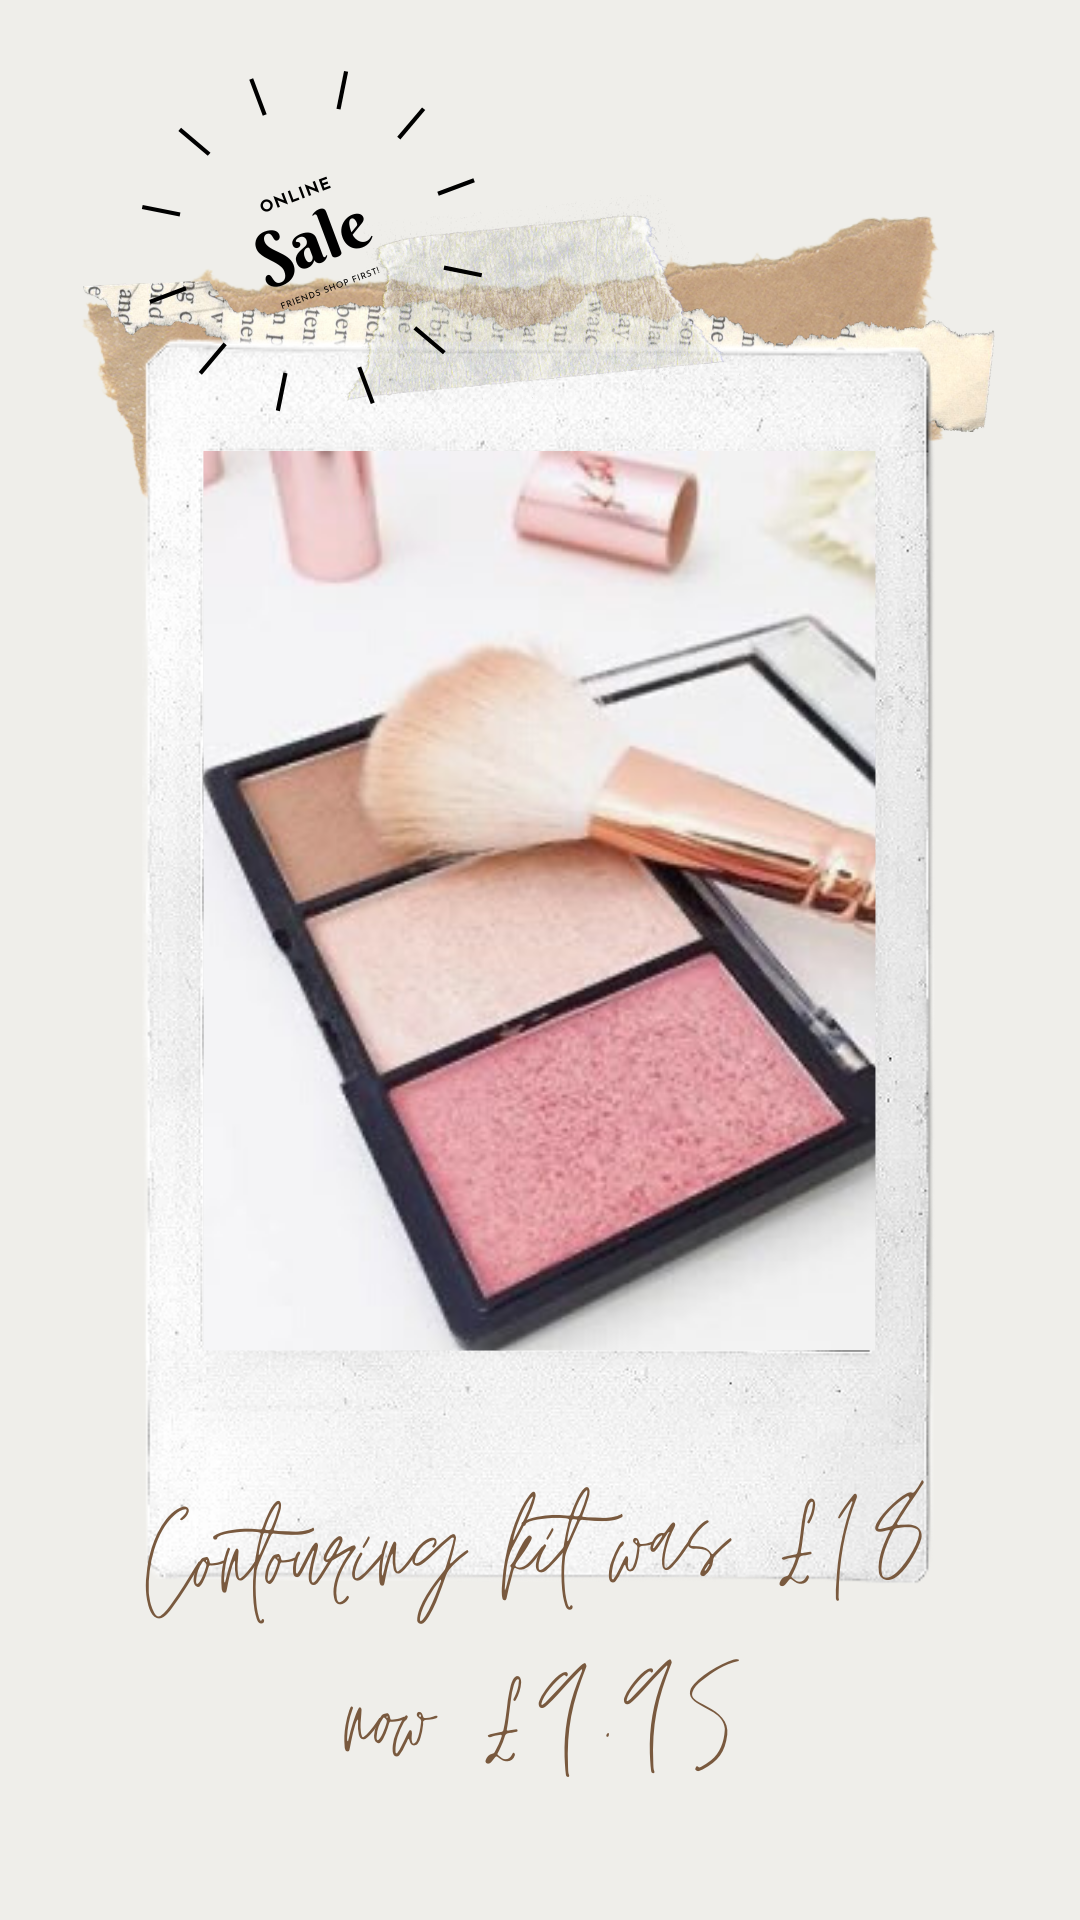 Contouring Kit in 2020 Contour kit, Color cosmetics